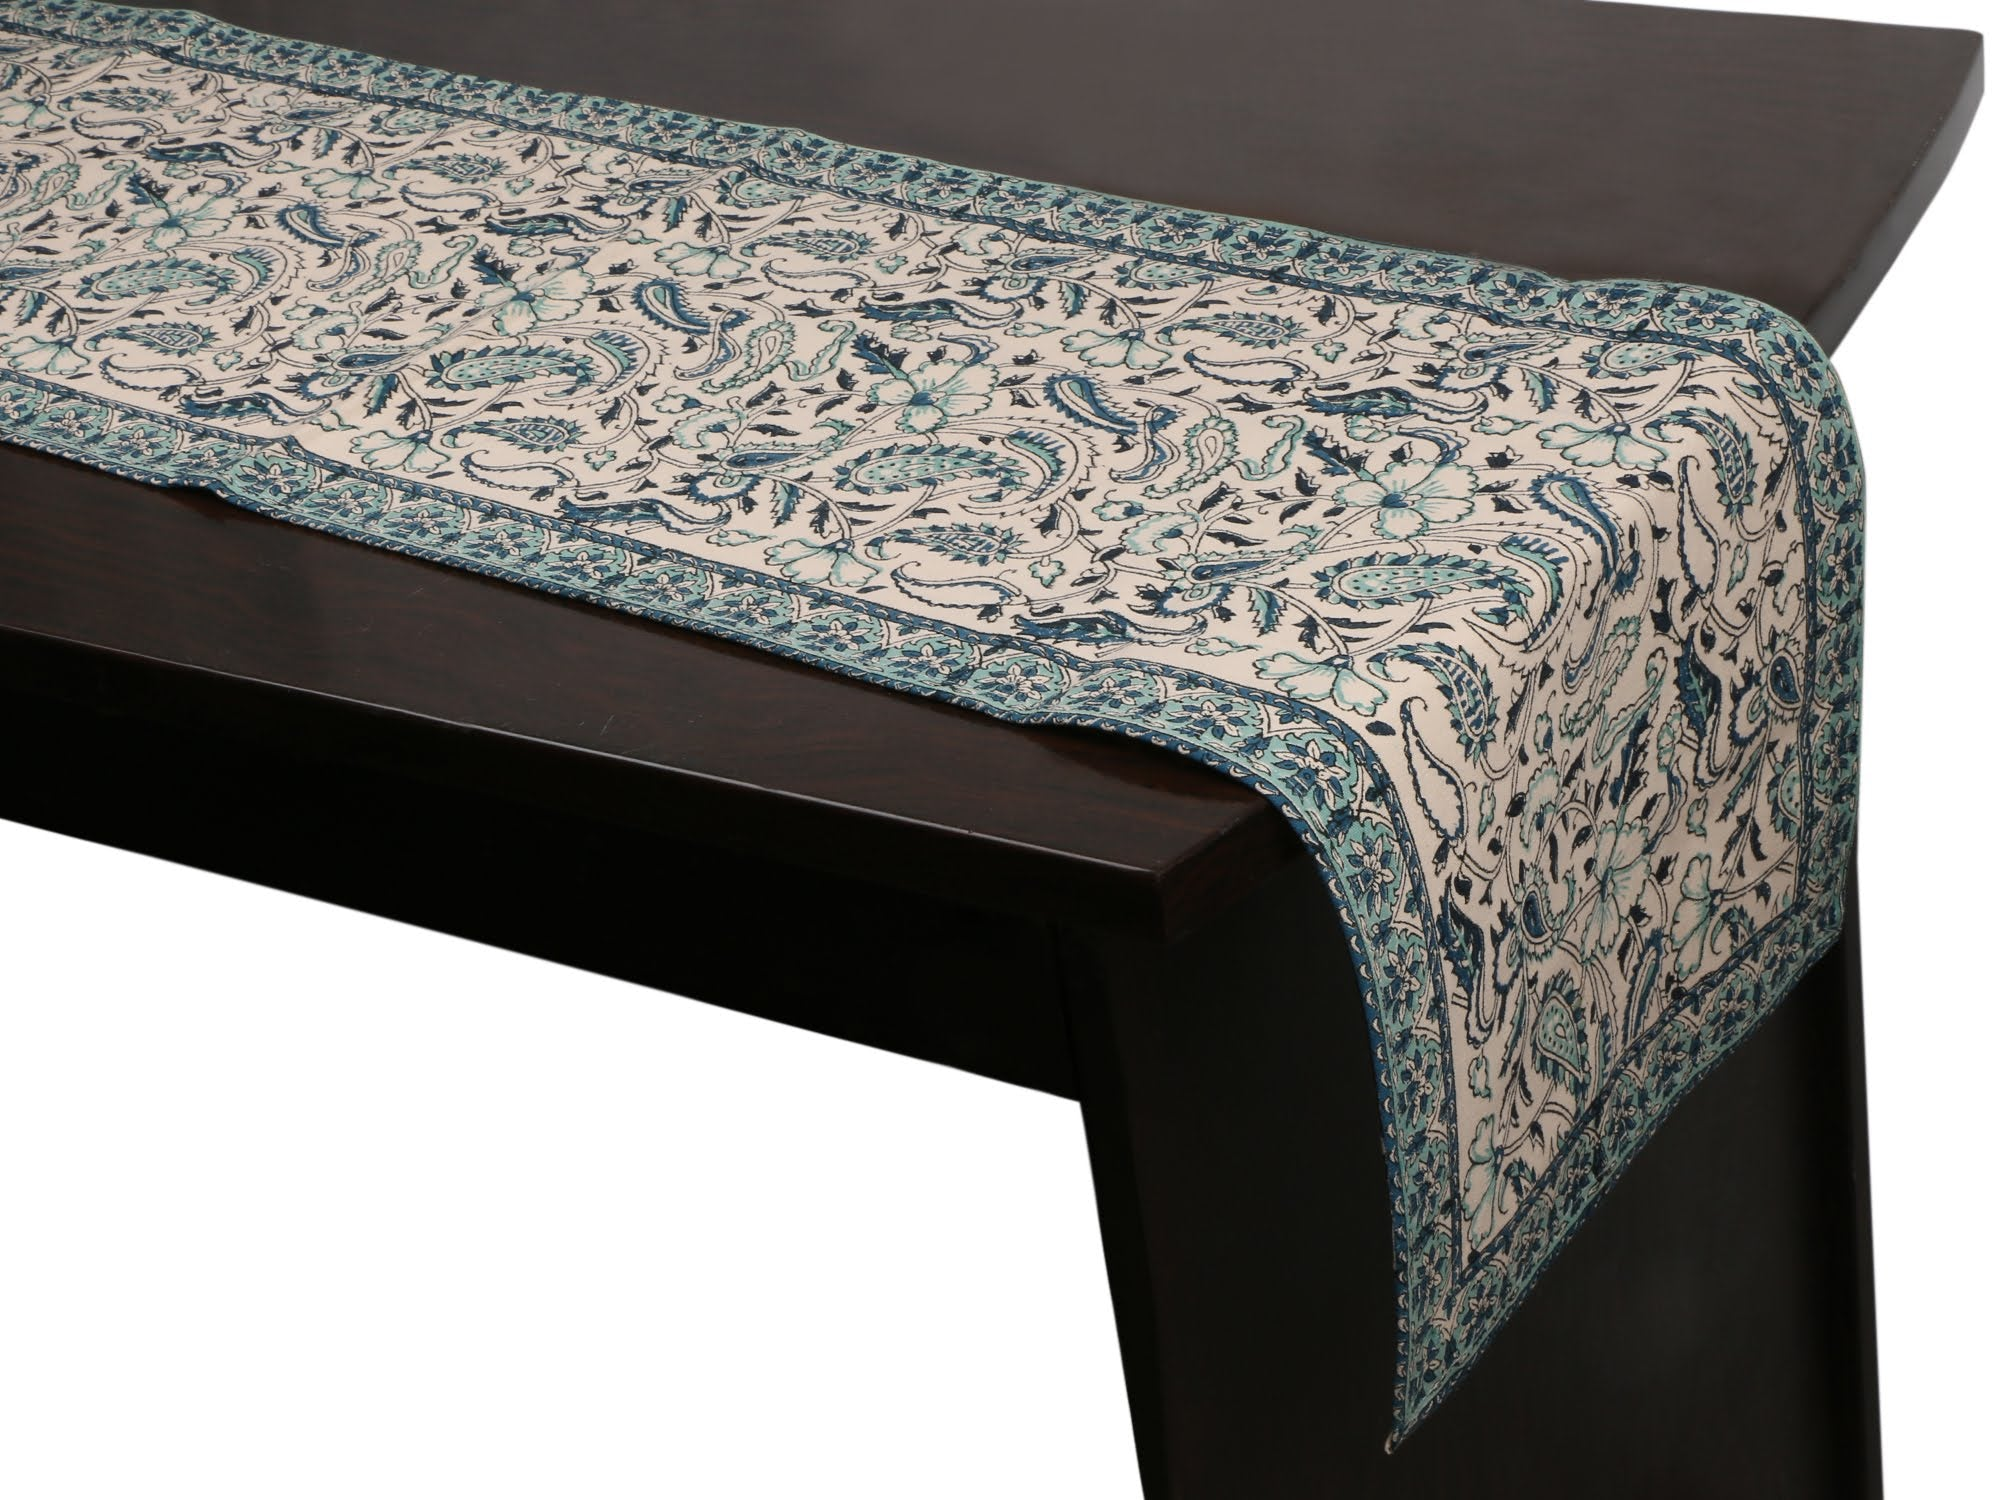 Cotton Floral & Paisley Table Runner - 13 x 54 - SNYTRV9